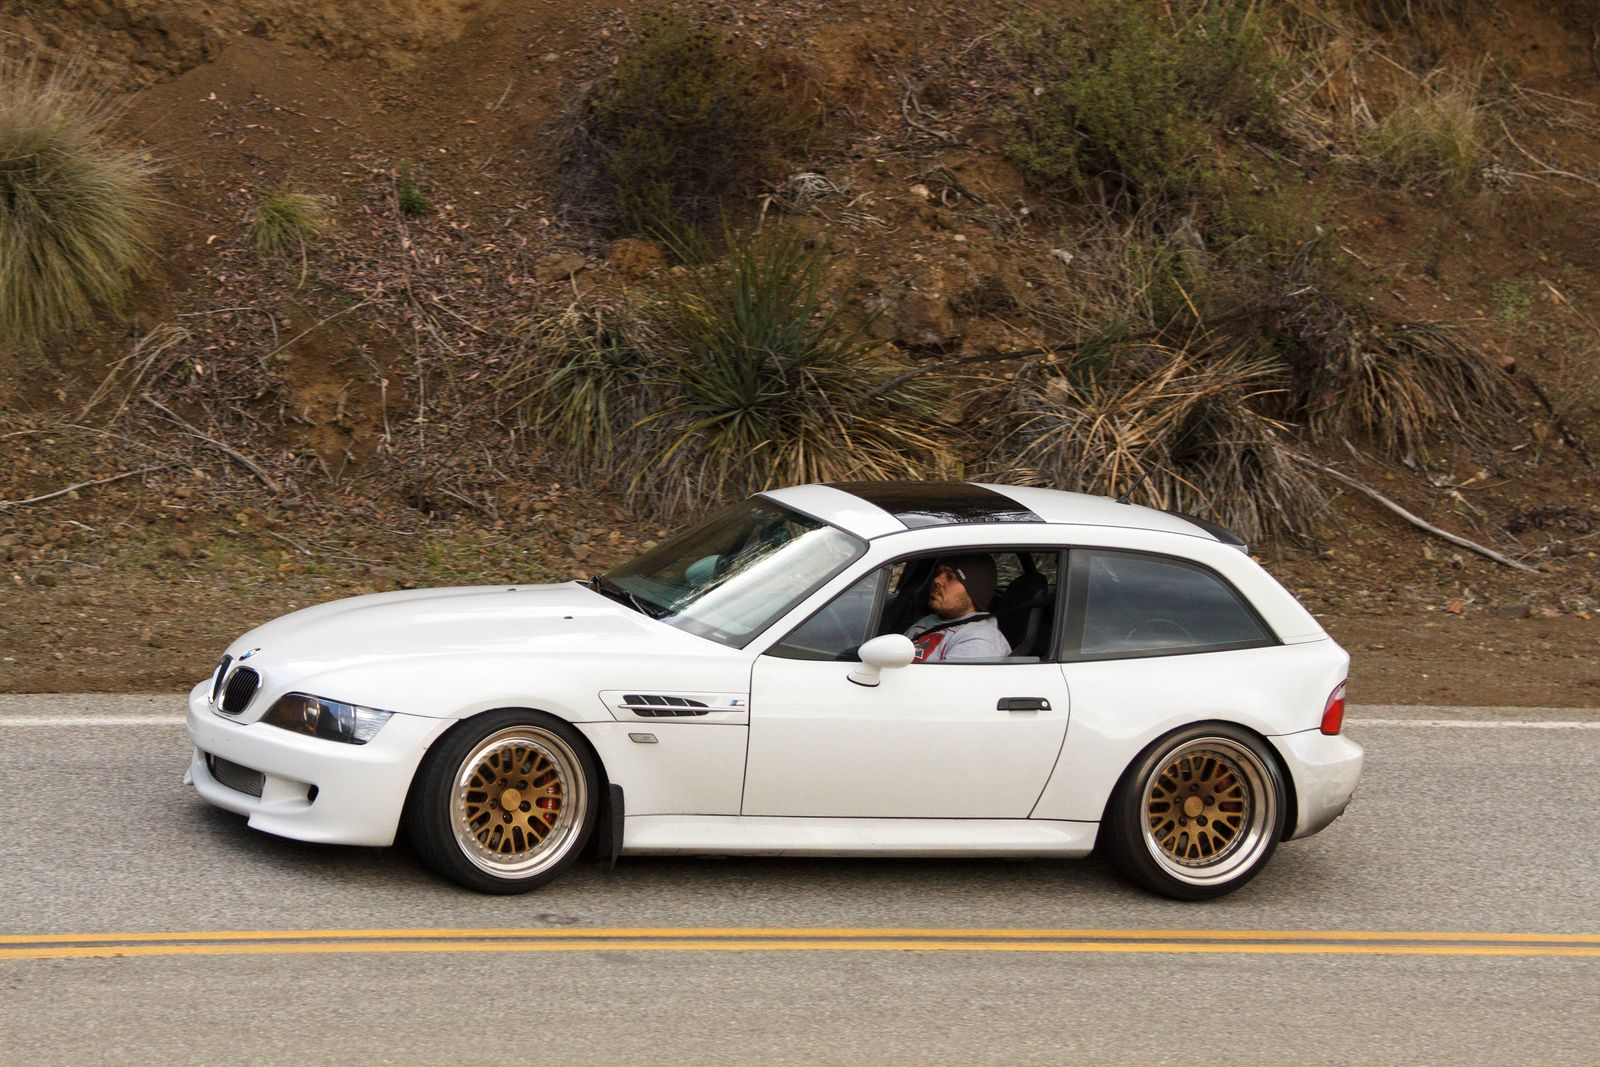 Bmw Z3 M Coupe With Images Bmw Z3 Bmw Bmw Cars